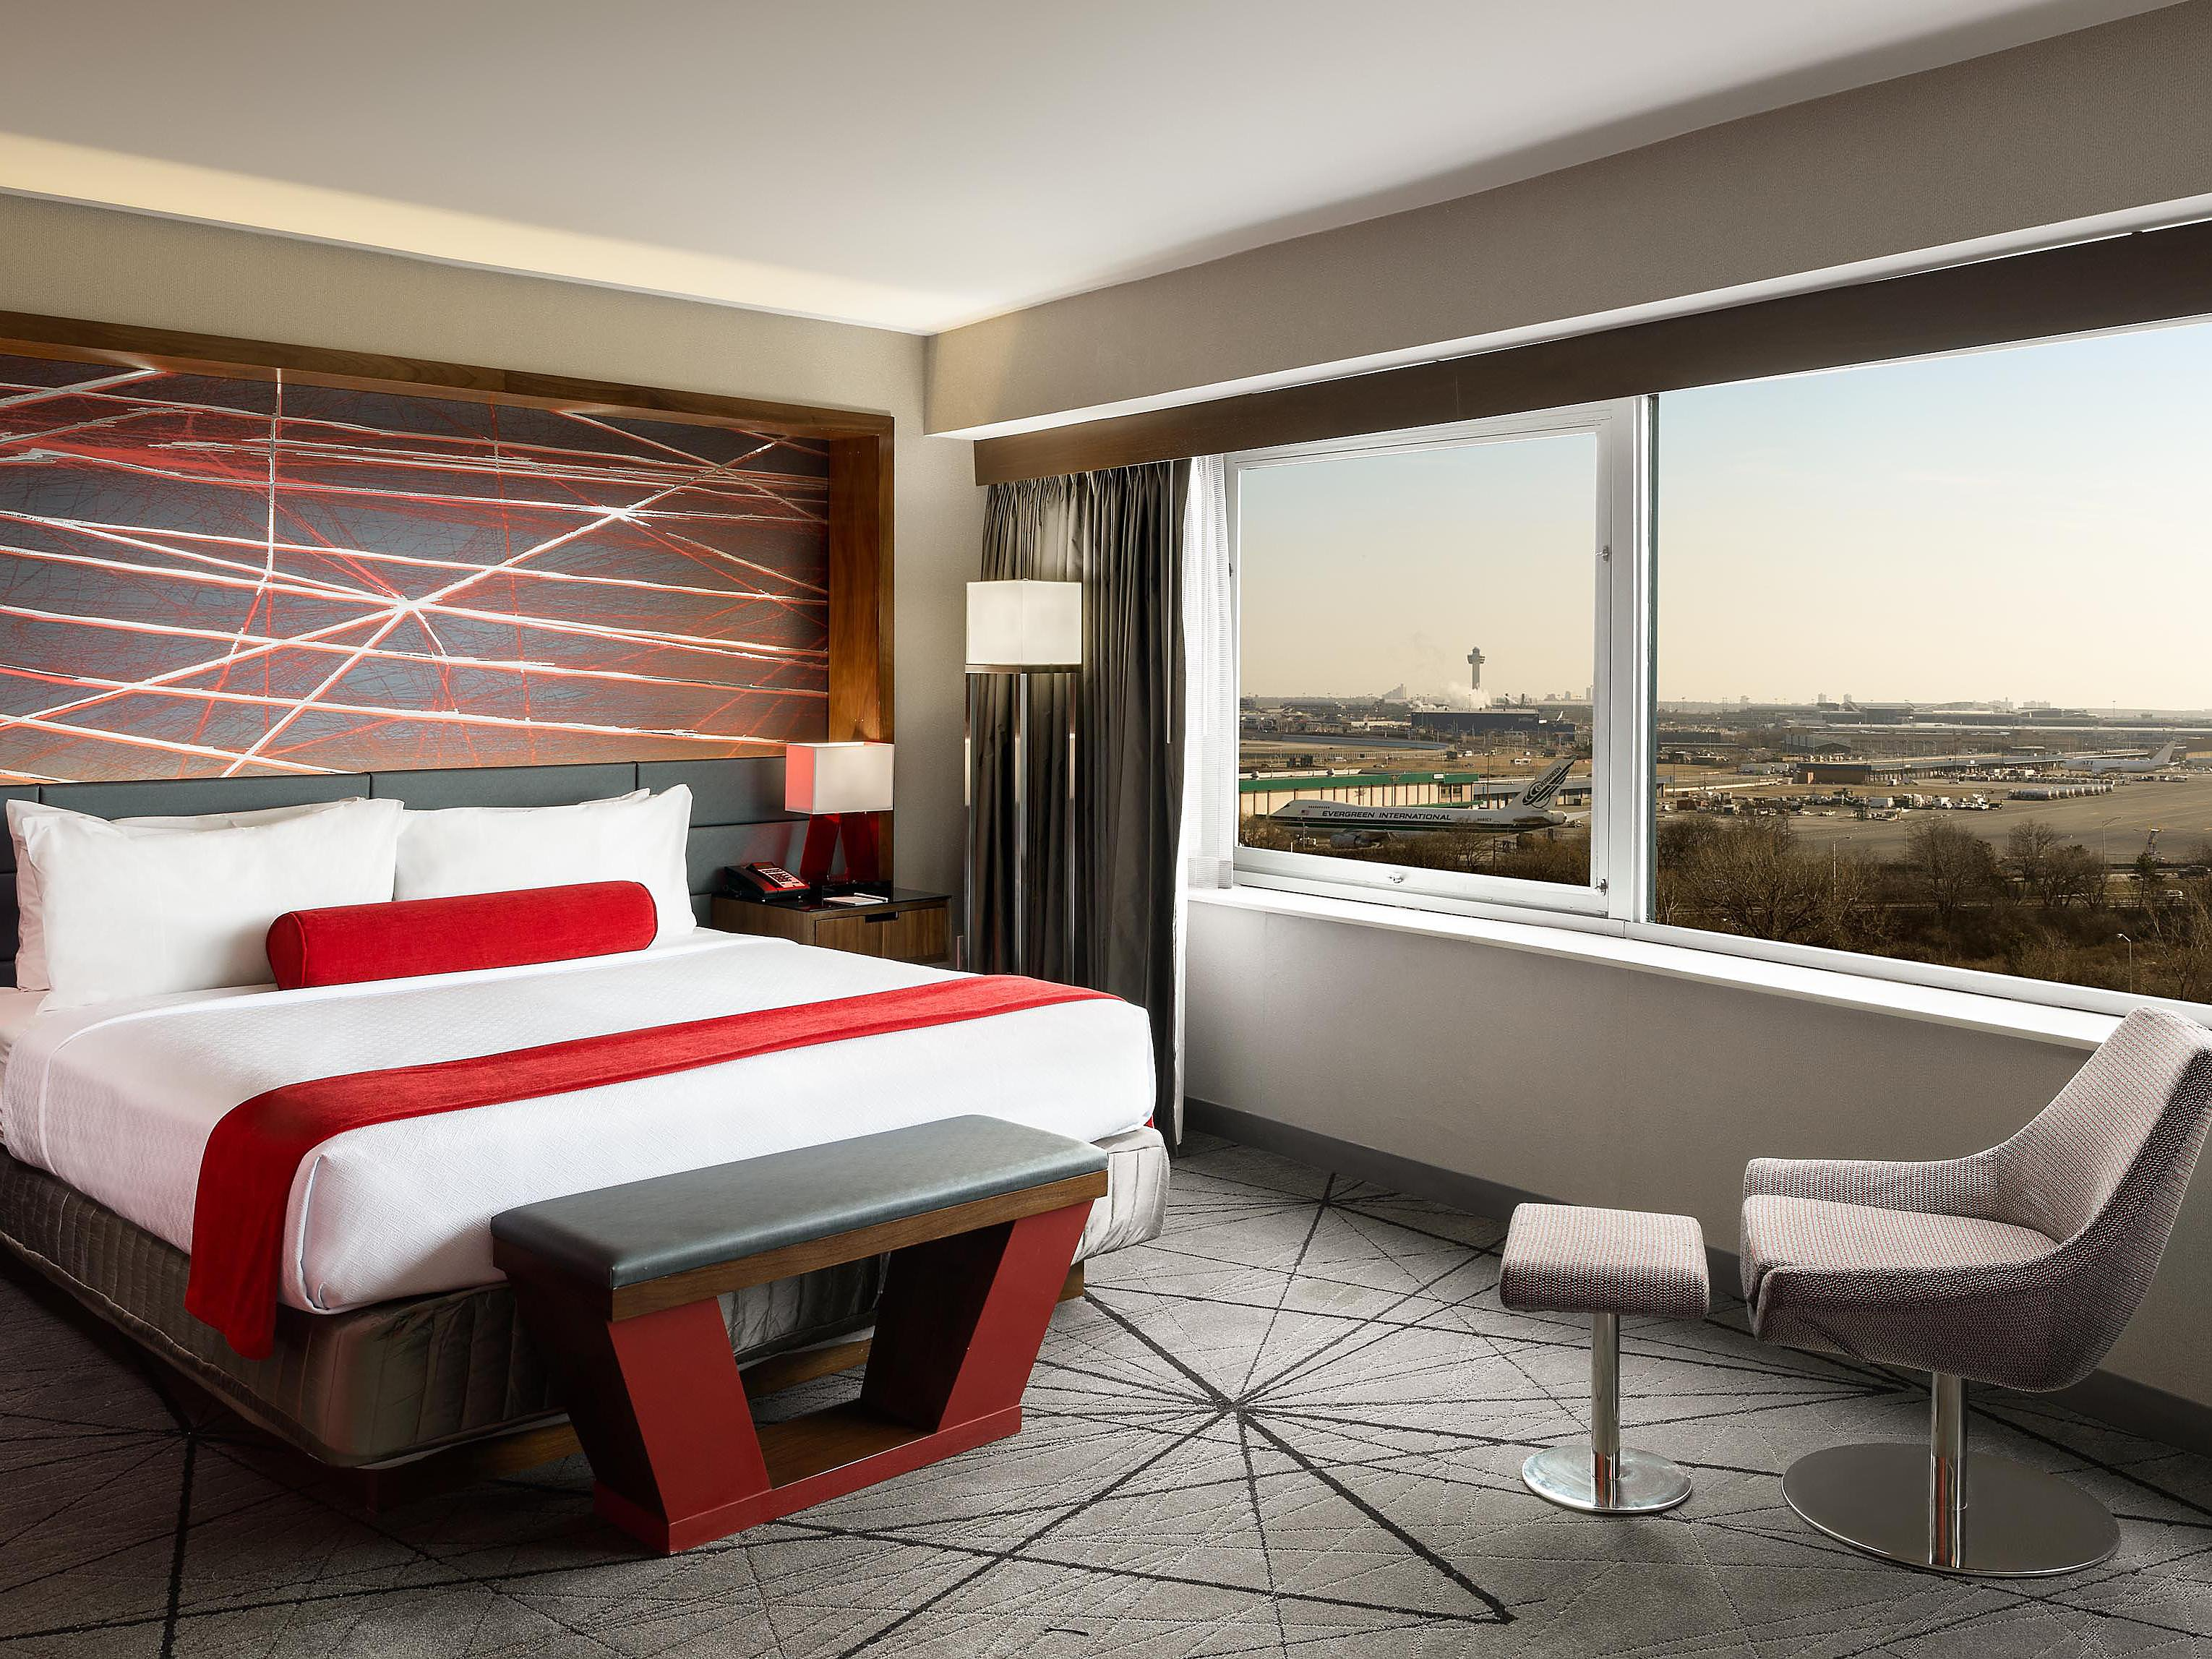 JFK Airport Hotels in Jamaica, Queens | Crowne Plaza JFK Airport NYC